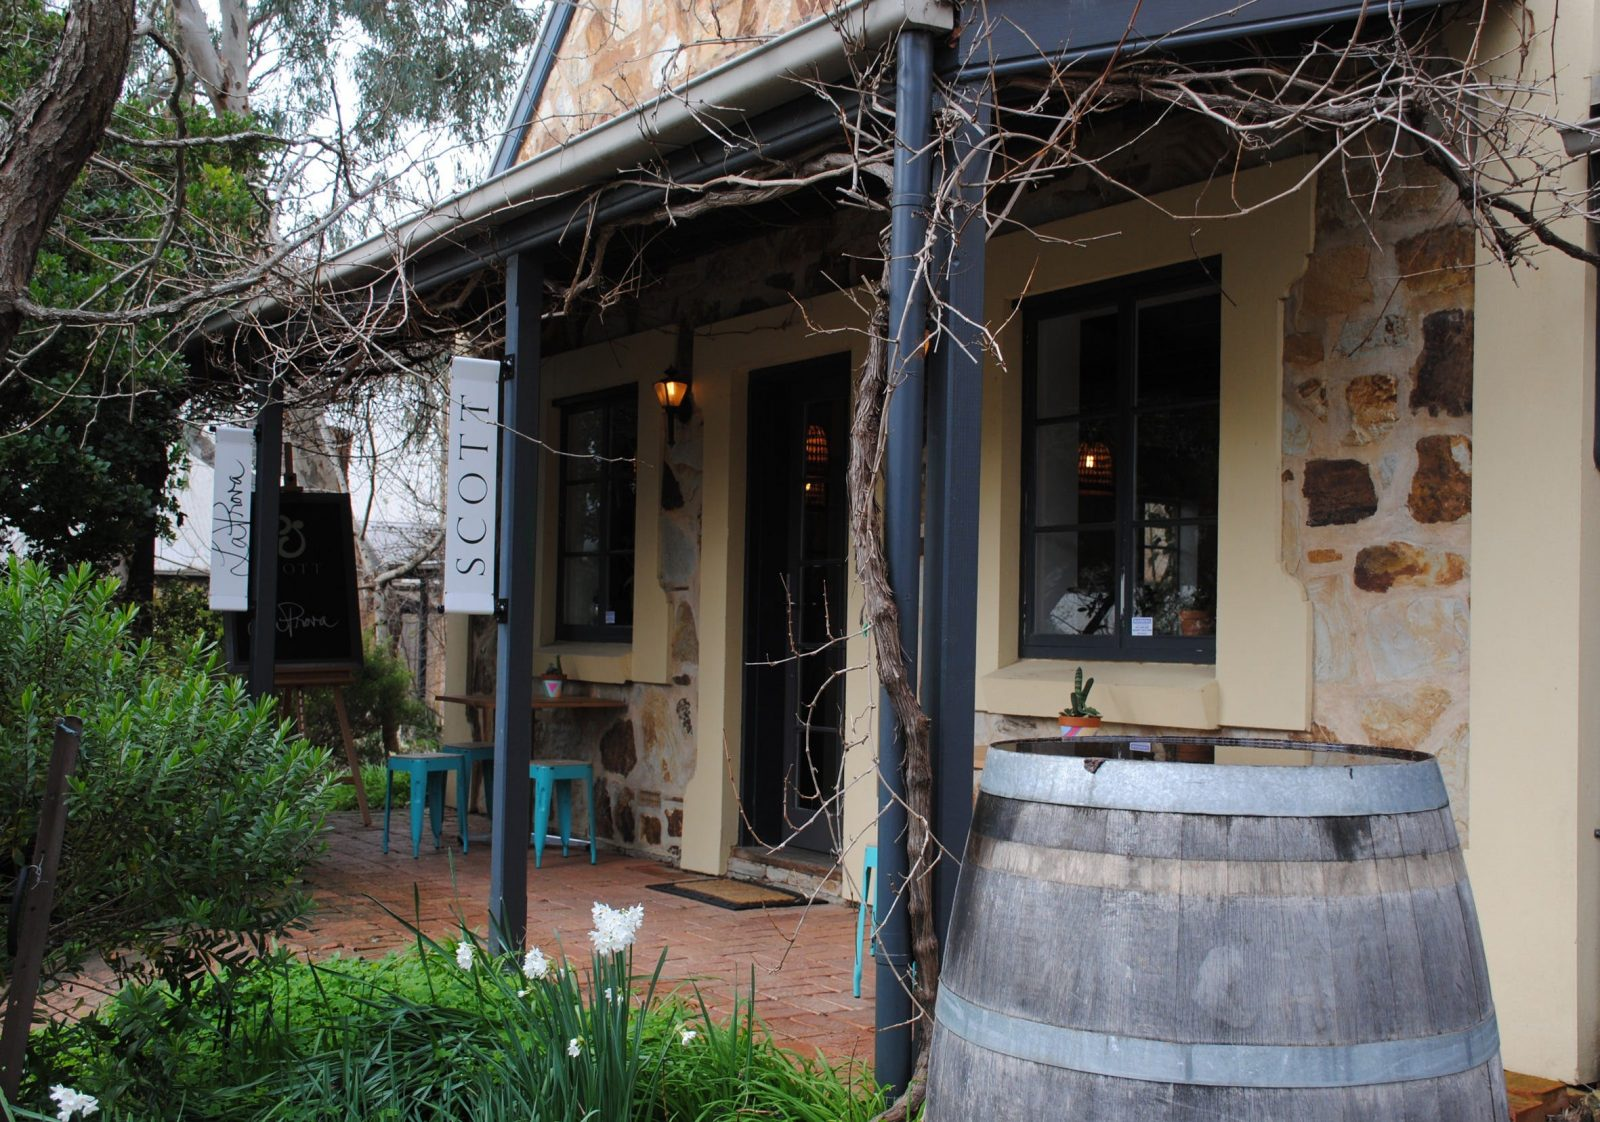 The cellar door is situated behind Landhaus and has parking.